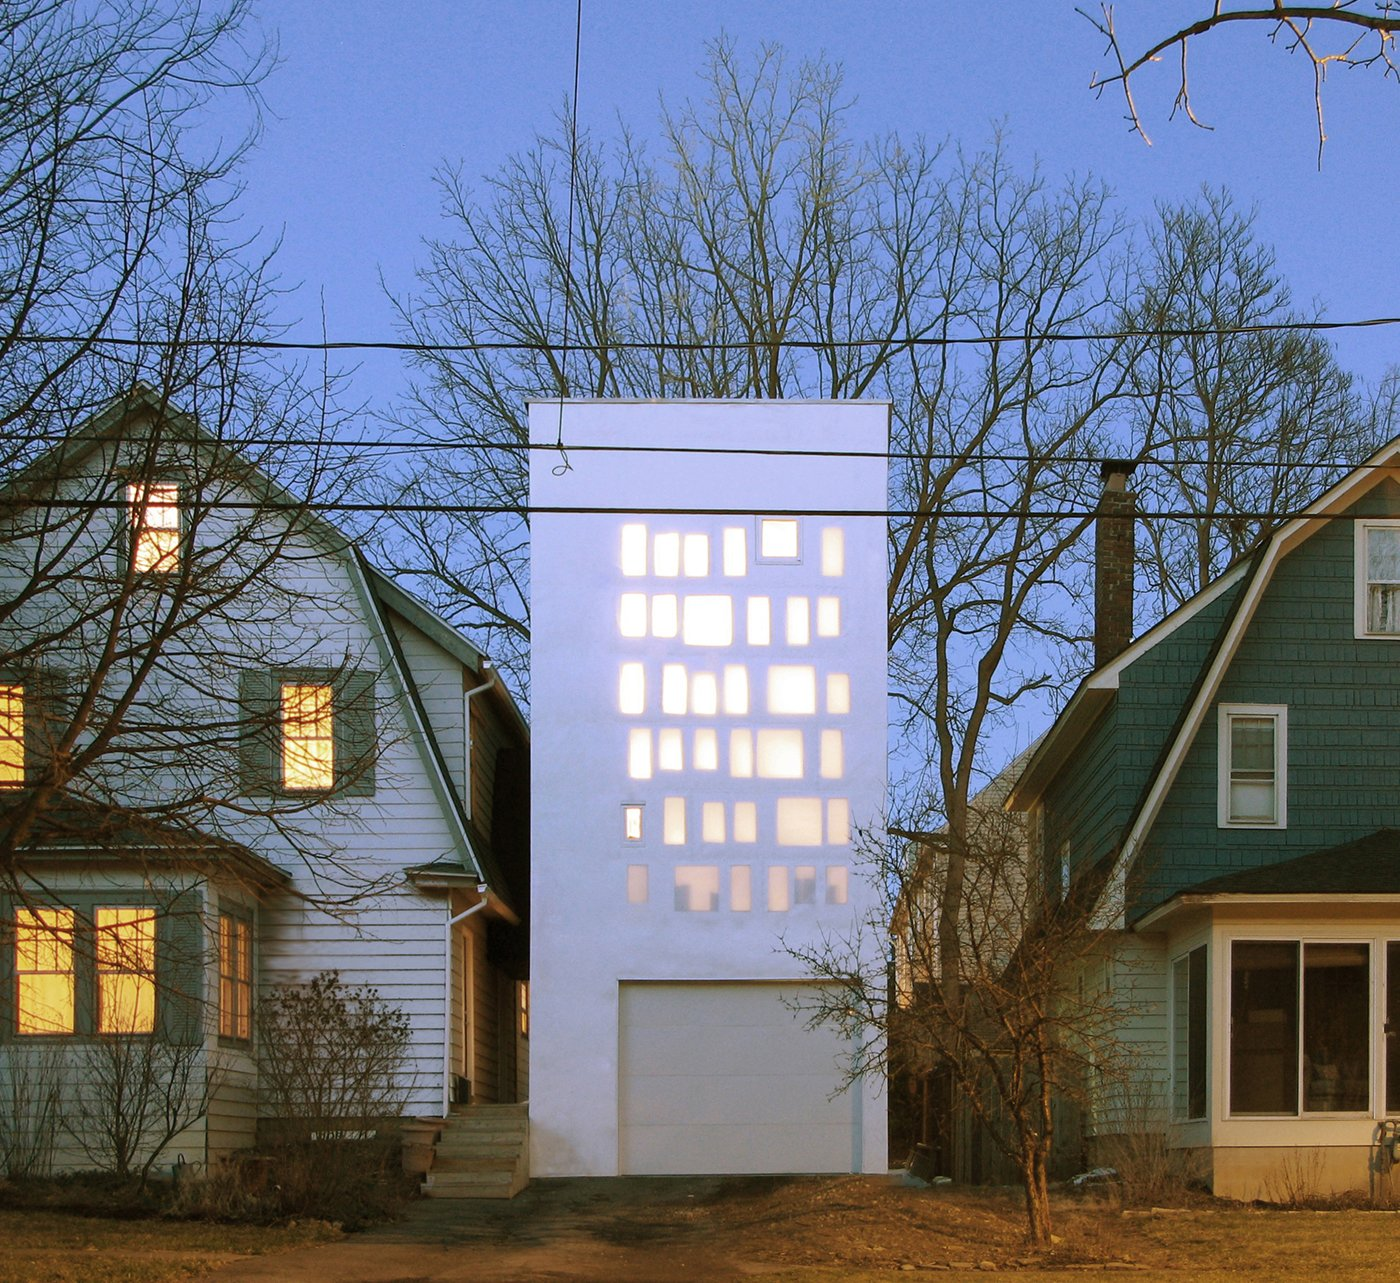 The façade is wrapped in 3-millimeter-thick silicon impregnated fiberglass fabric. This produces its unique, translucent glow while also ensuring that light is transmitted to the interior and the owners' privacy is protected. Curb Appeal: 7 Stunning Facades That Must Look Great on Google Maps by William Harrison